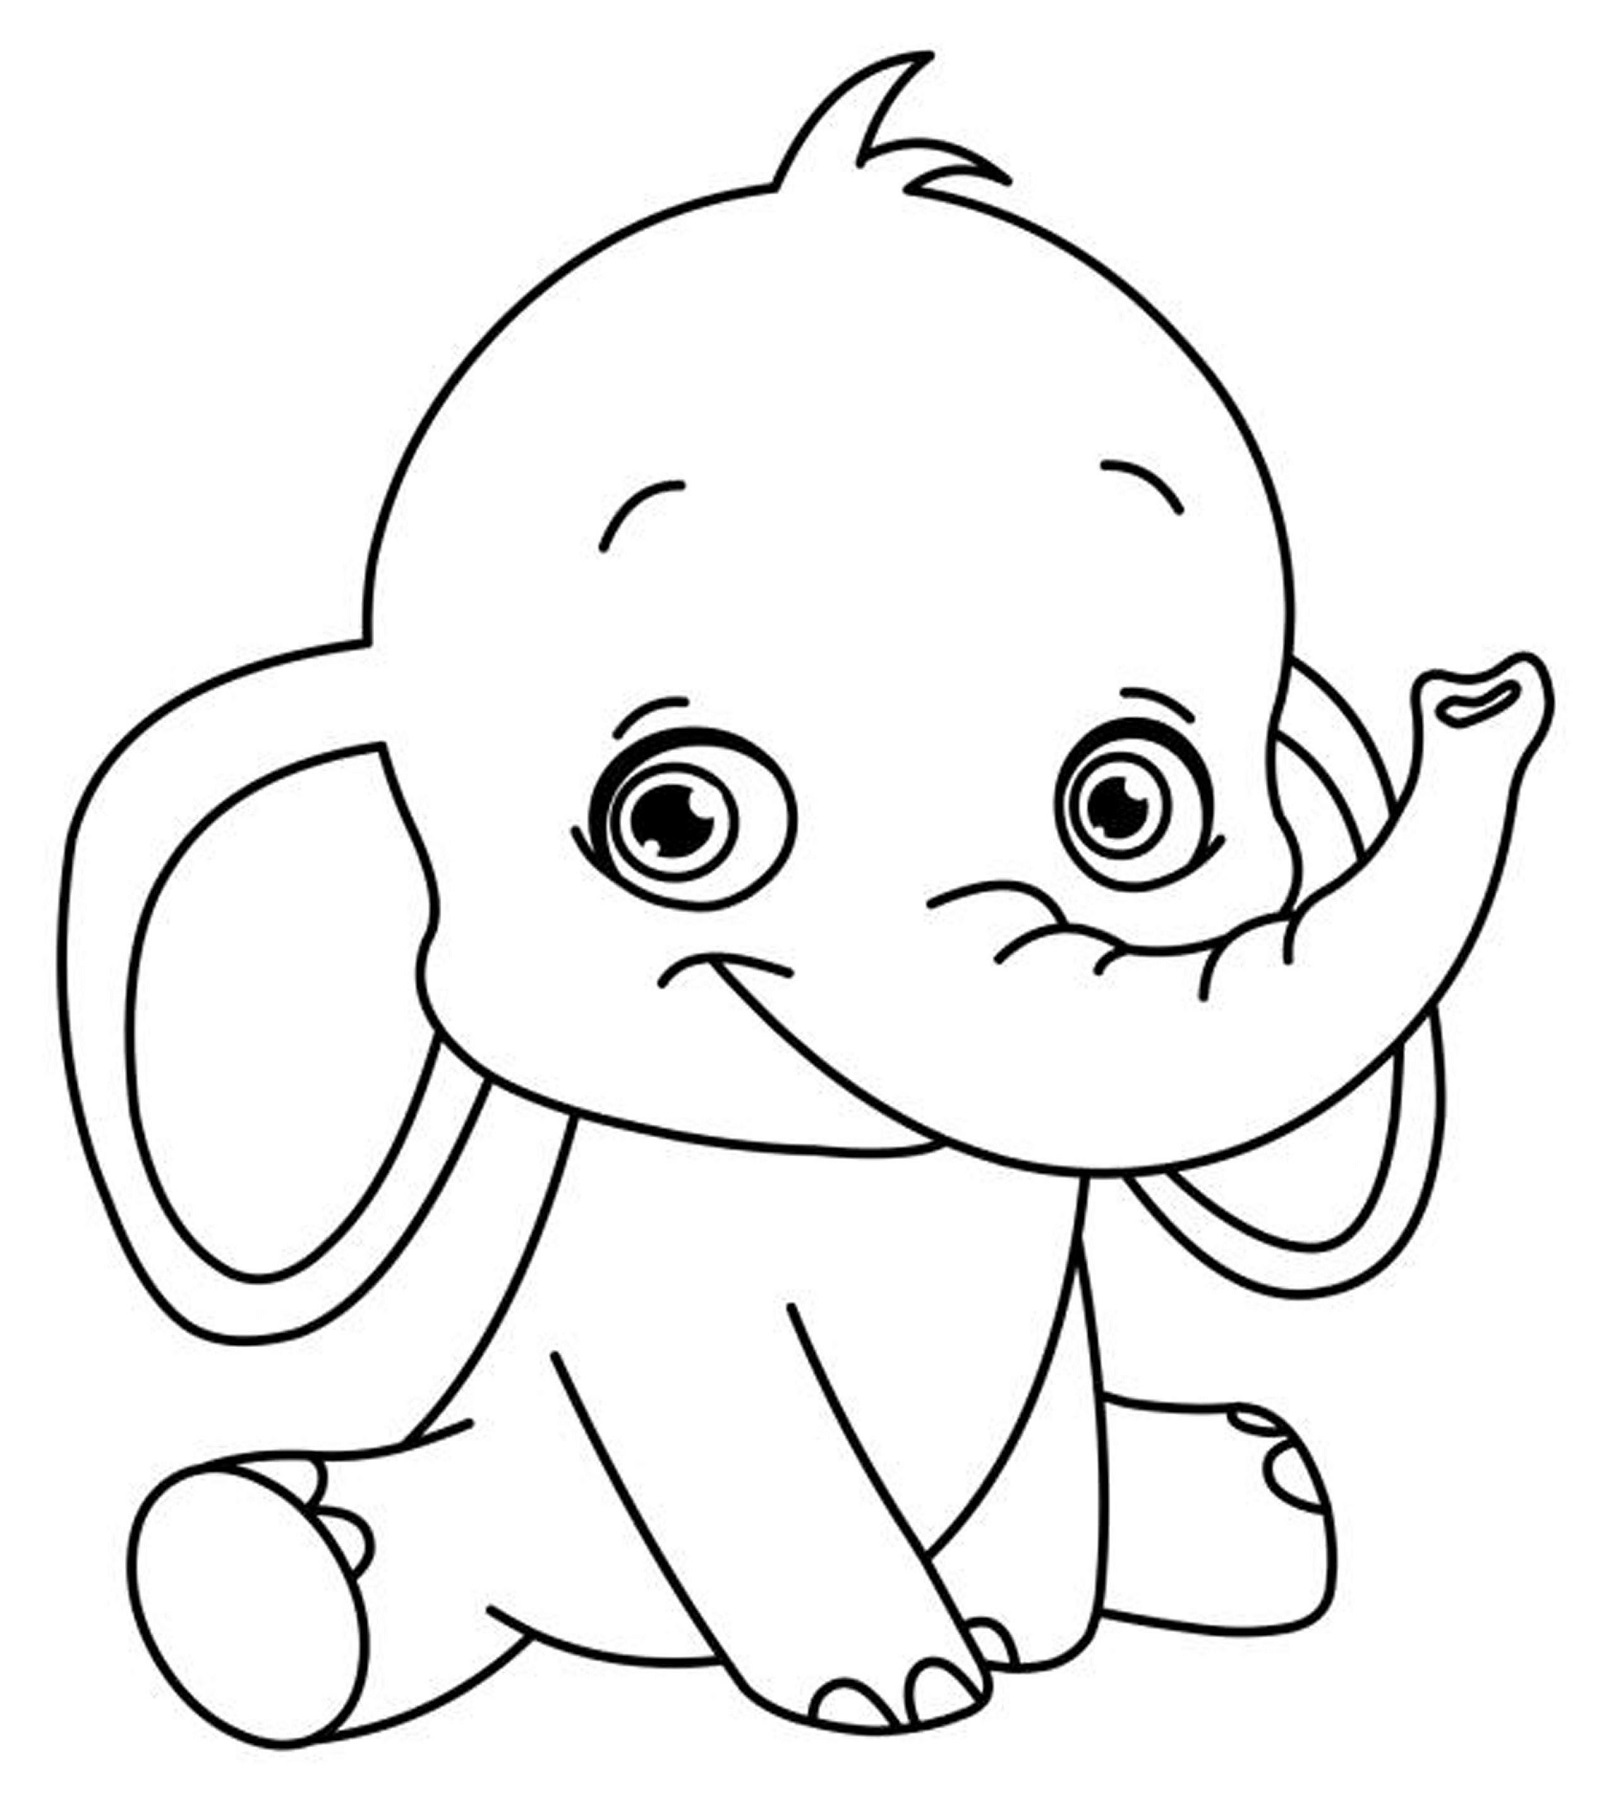 coloring pics of elephant childrens colouring pages to print elephant learning of coloring elephant pics